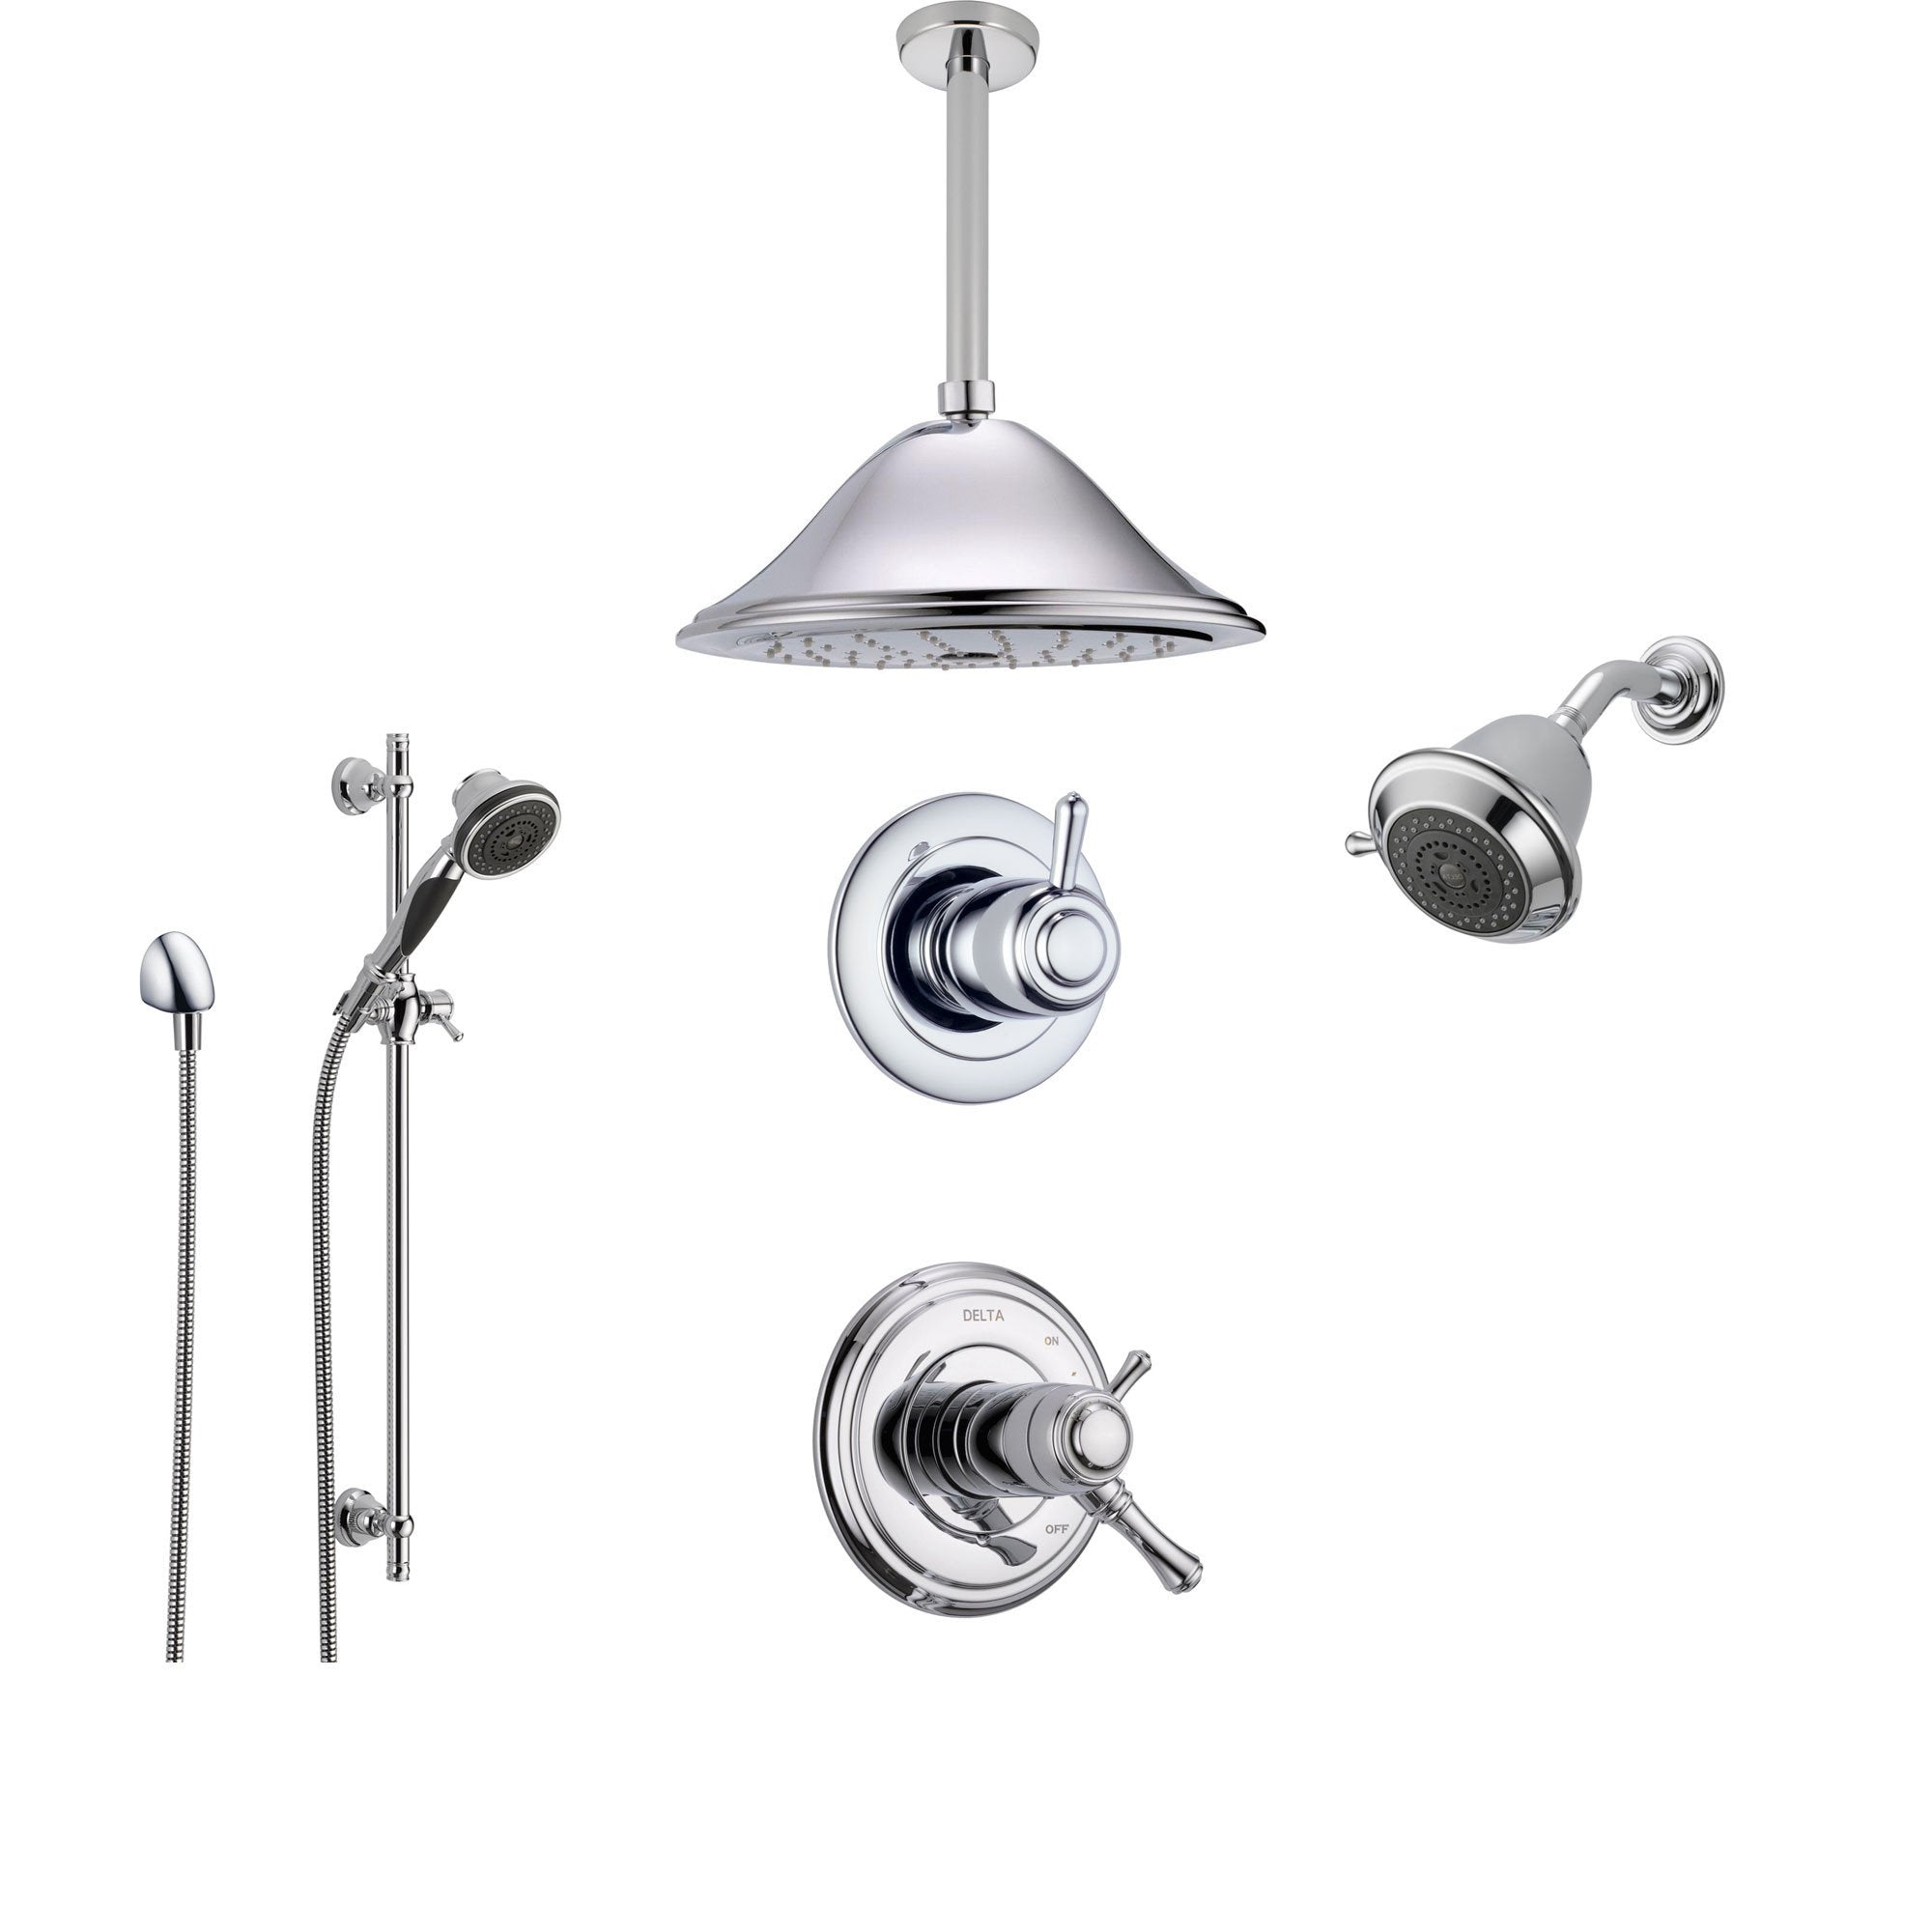 Delta Cassidy Chrome Shower System With Thermostatic Shower Handle 6 Setting Diverter Large Rain Ceiling Mount Showerhead Wall Mount Showerhead